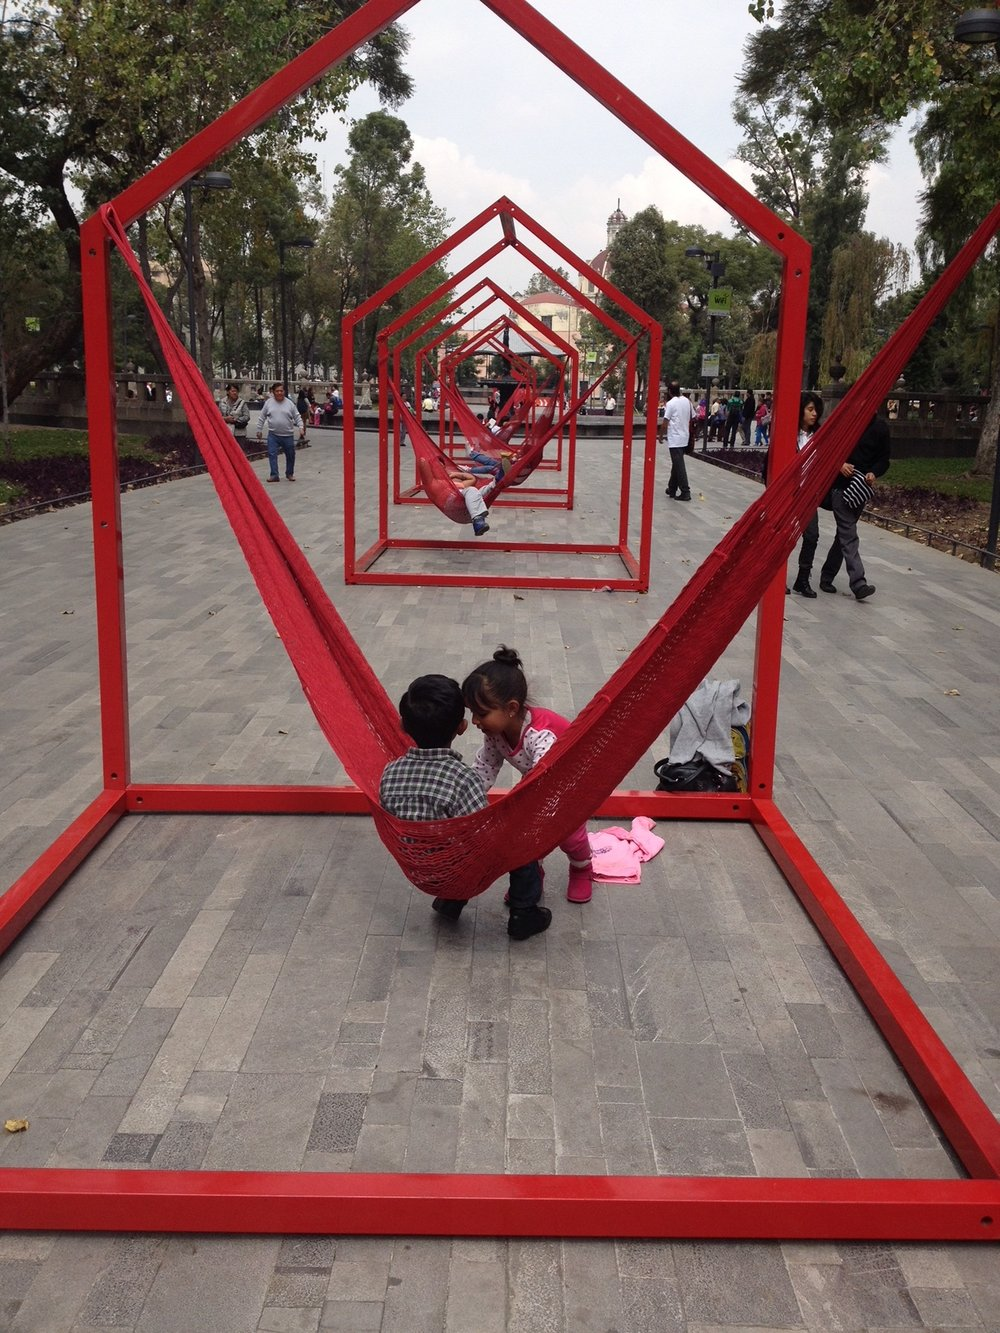 Everybody loved this temporary installation of hammock swings in Mexico City's Central Plaza. They would make a great addition to a community park. I love the idea of moving them every few weeks.